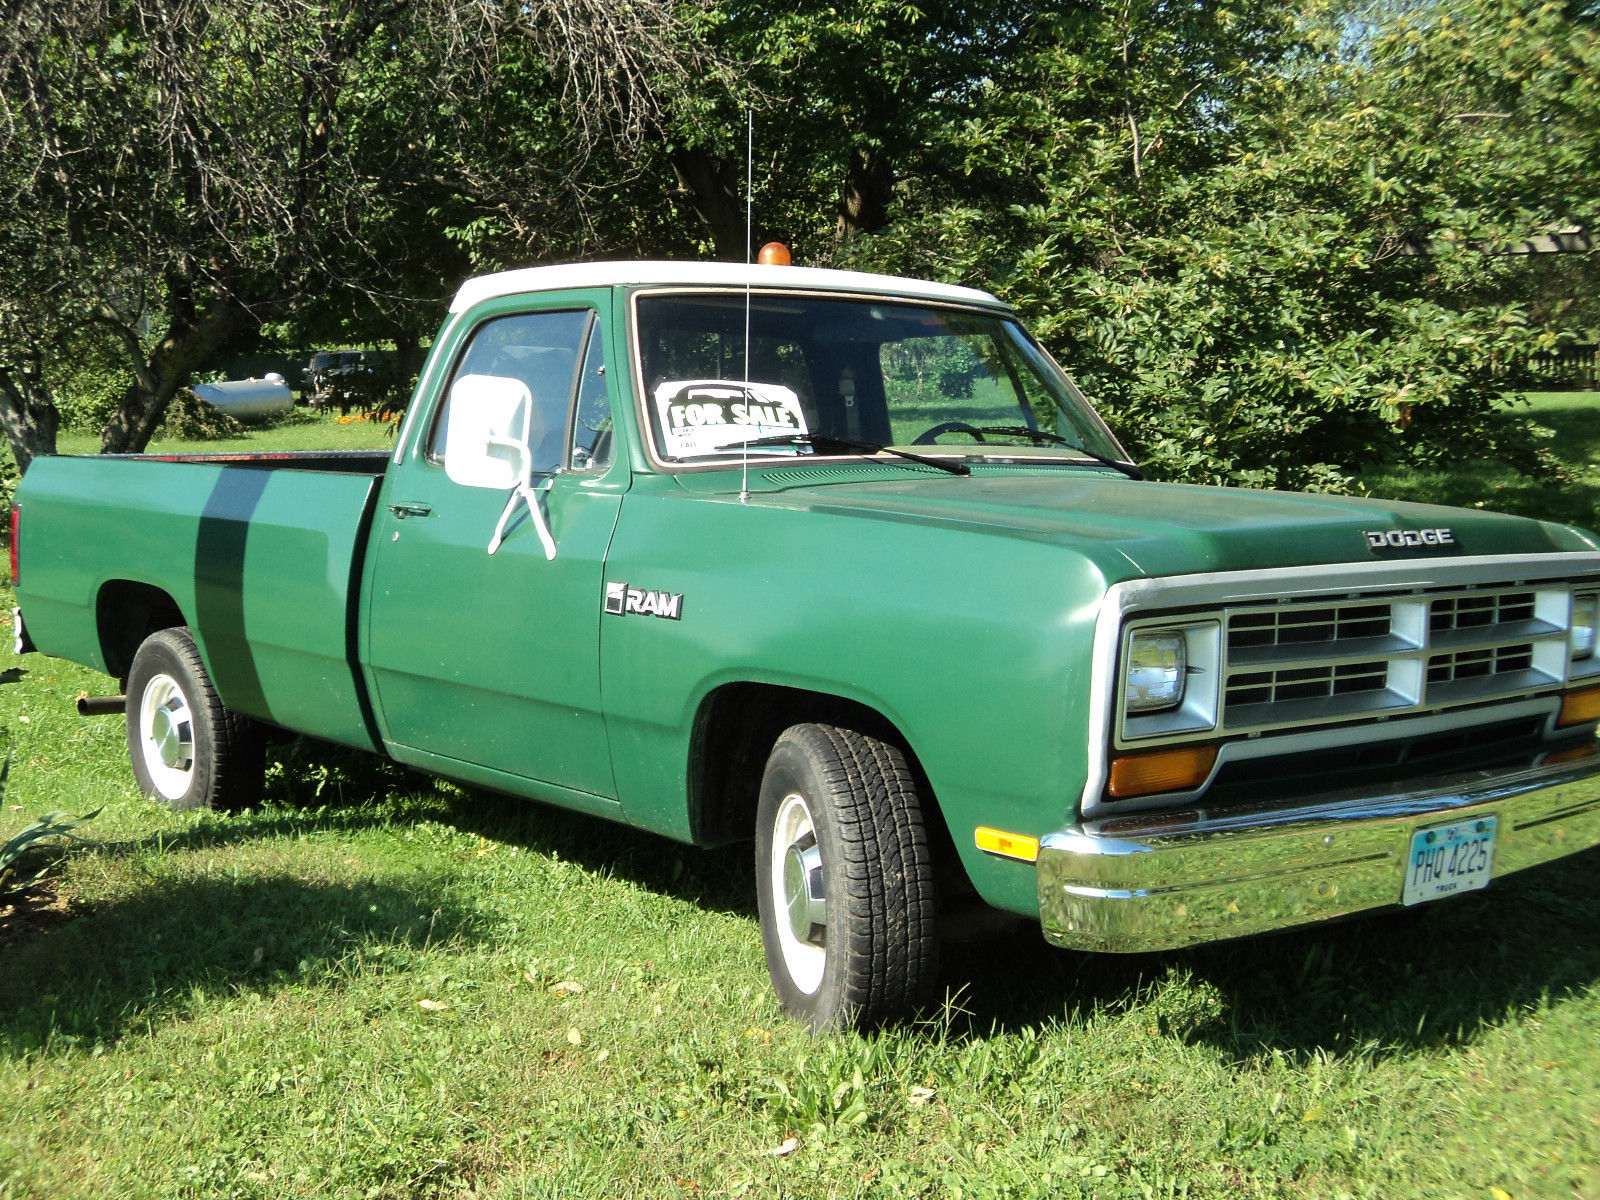 1987 Dodge Other Pickups LE-150